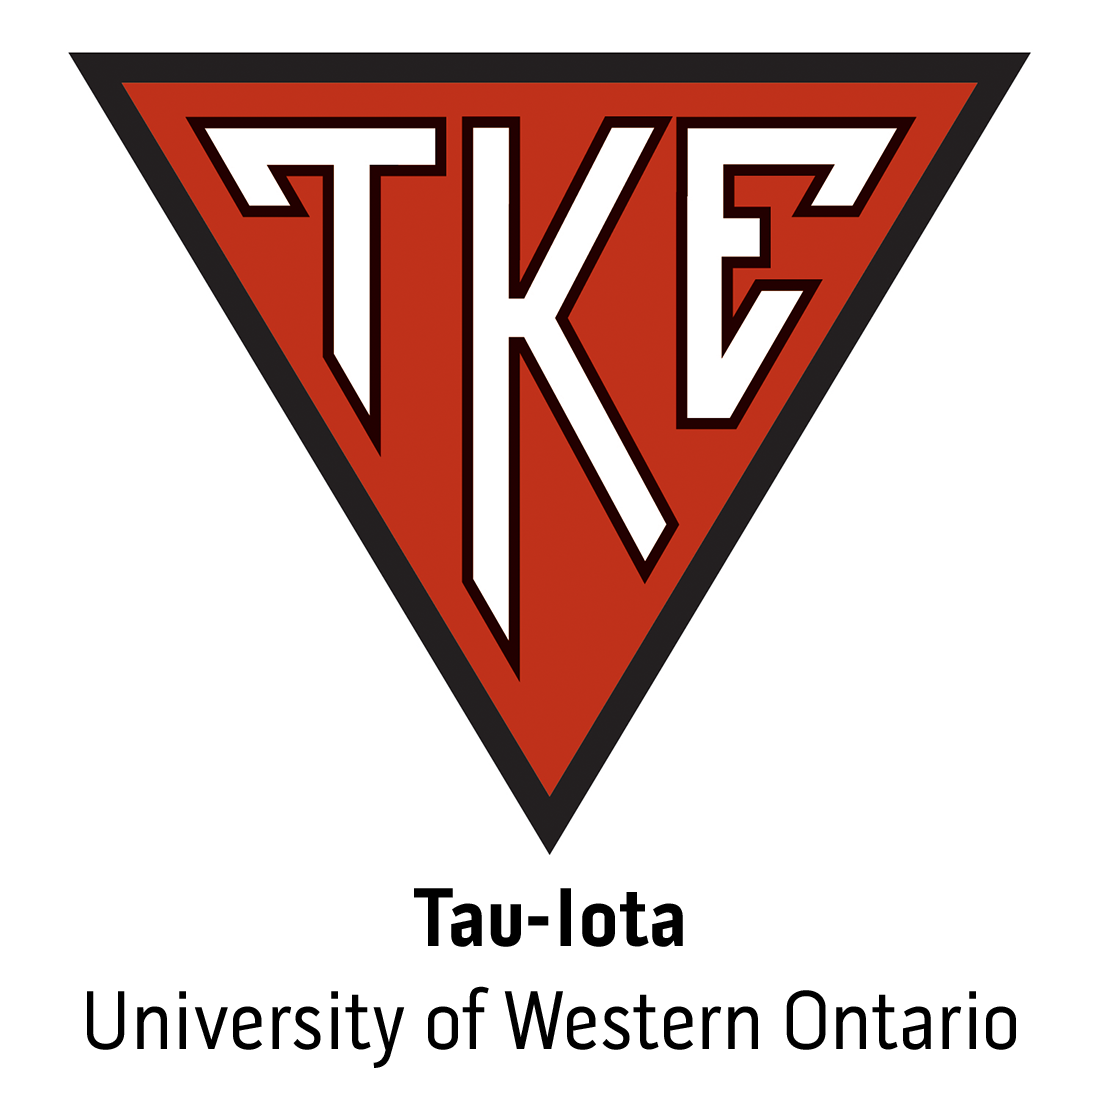 Tau-Iota C at Western University